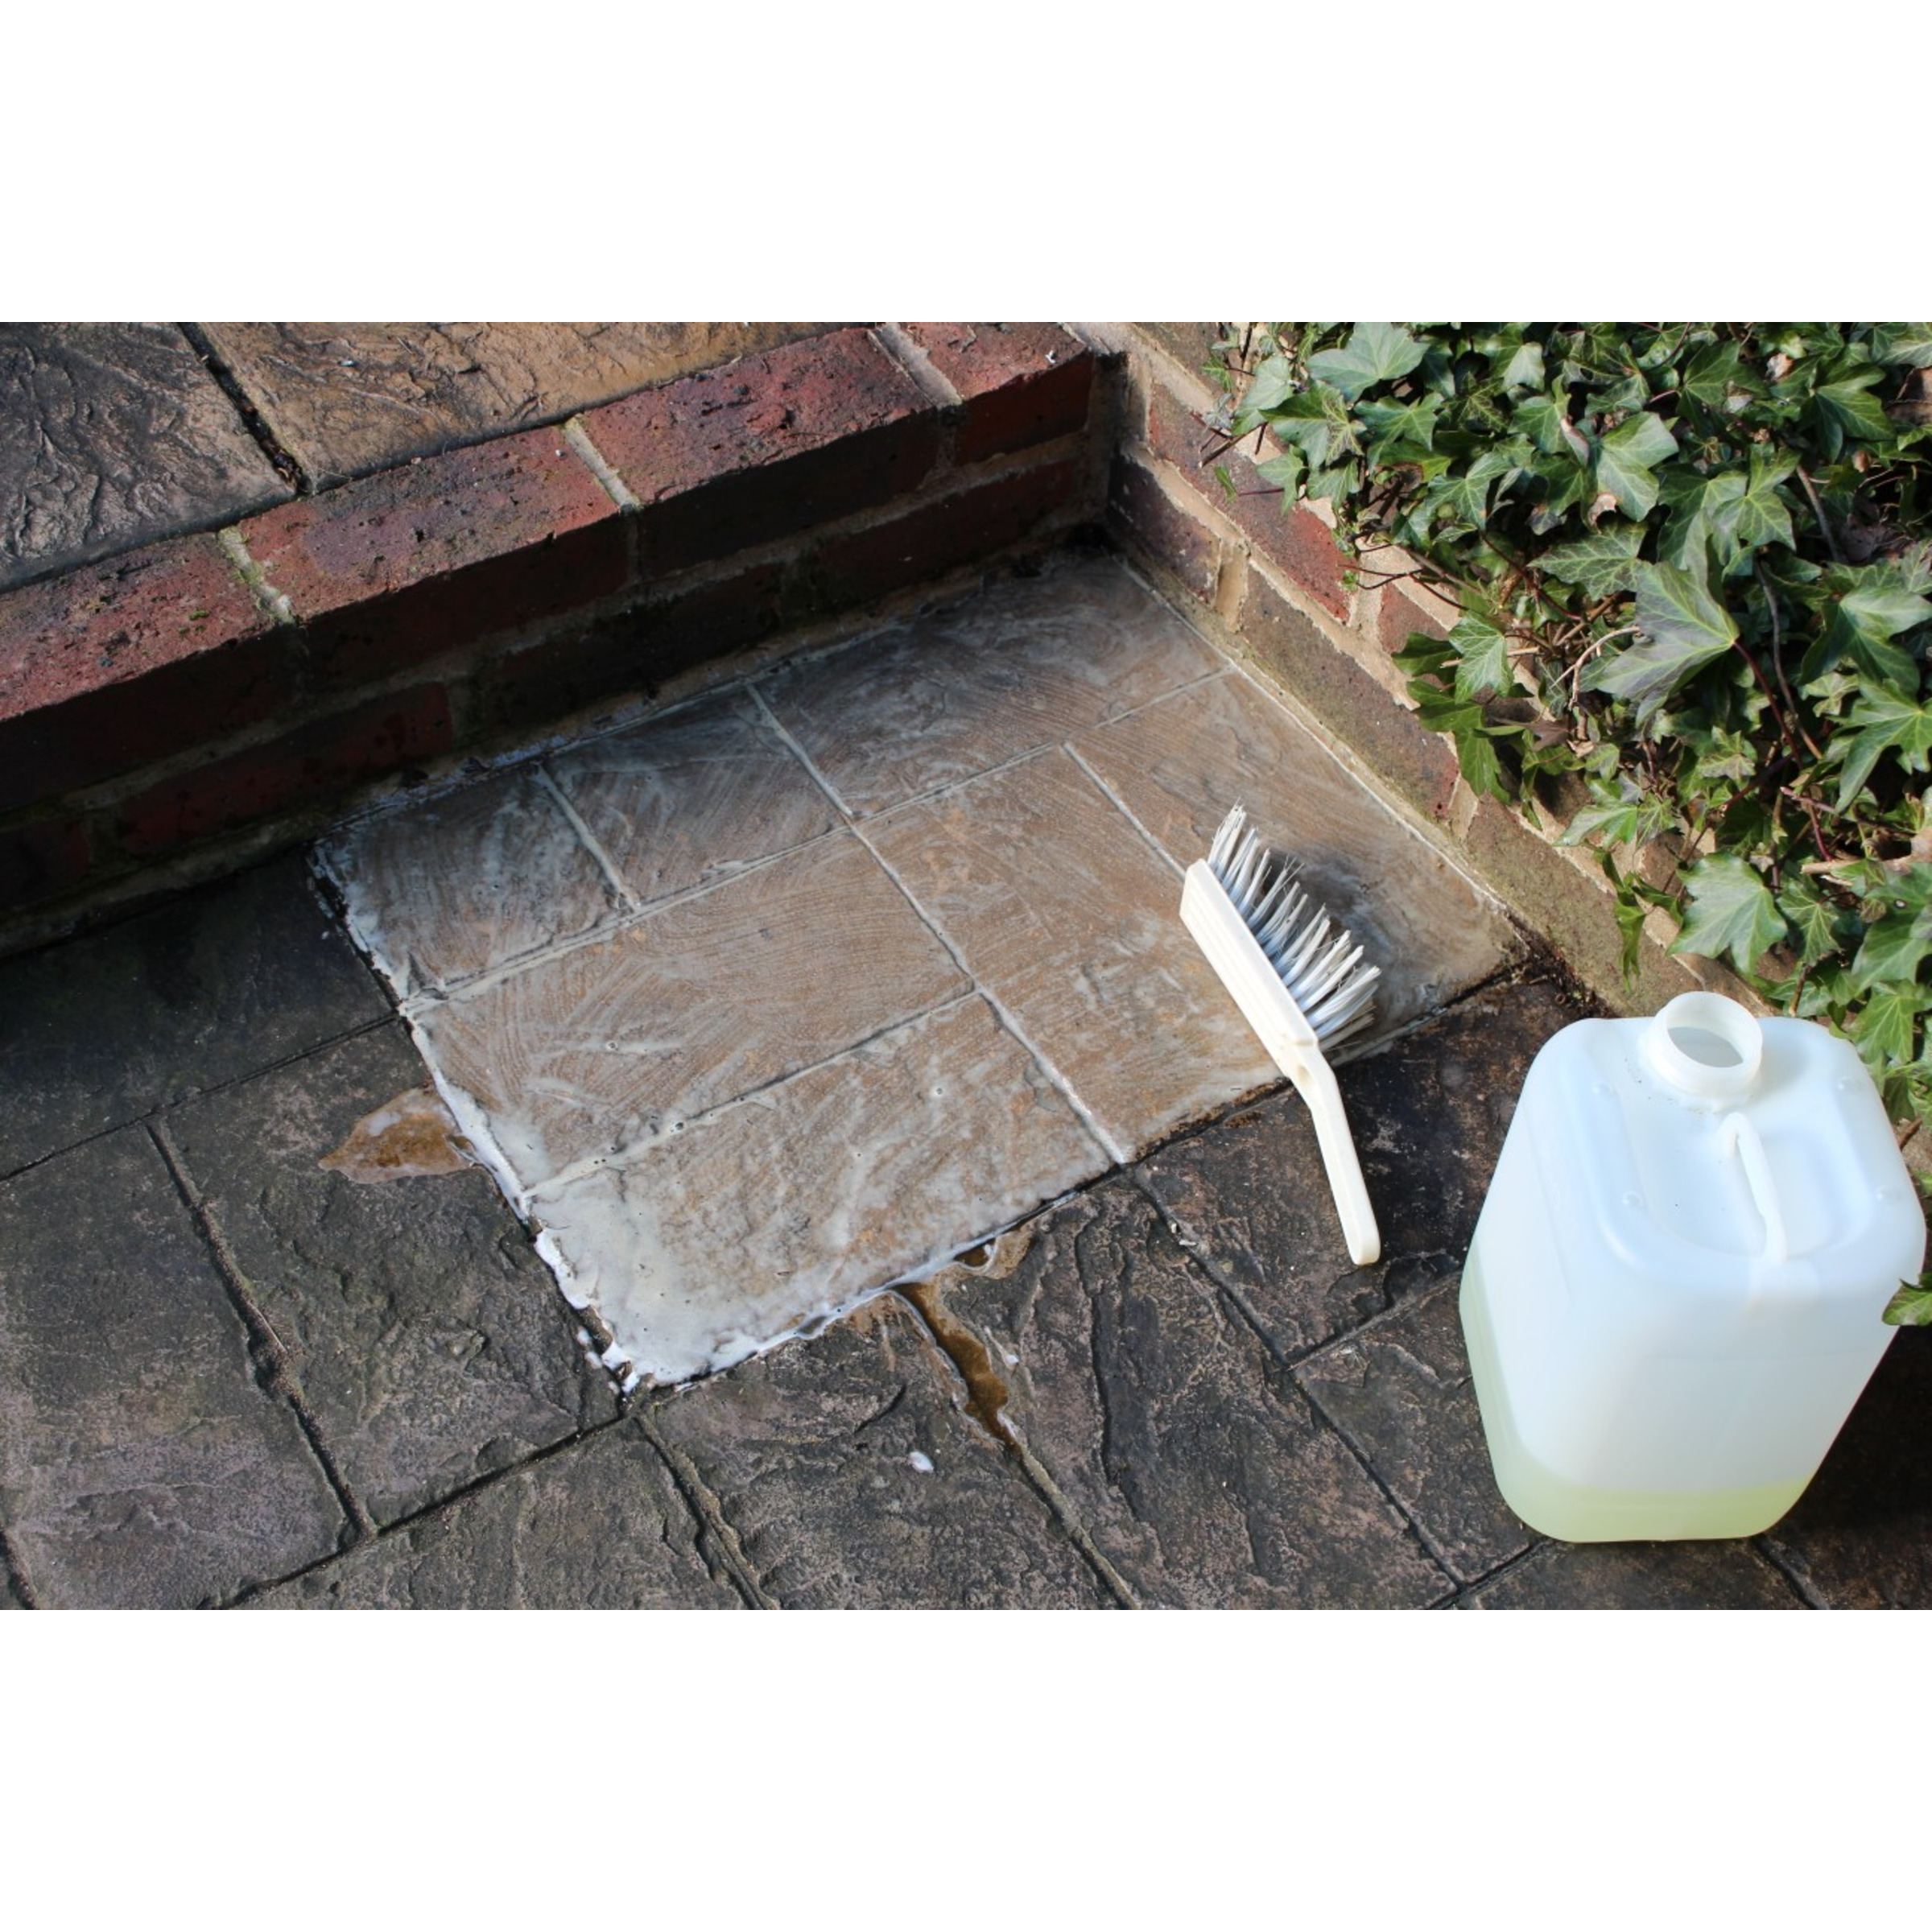 Patio Clean Xtreme - Powerful All Purpose Patio Cleaner - Sandstone Patio Cleaner Concrete Patio Cleaner Brick Patio